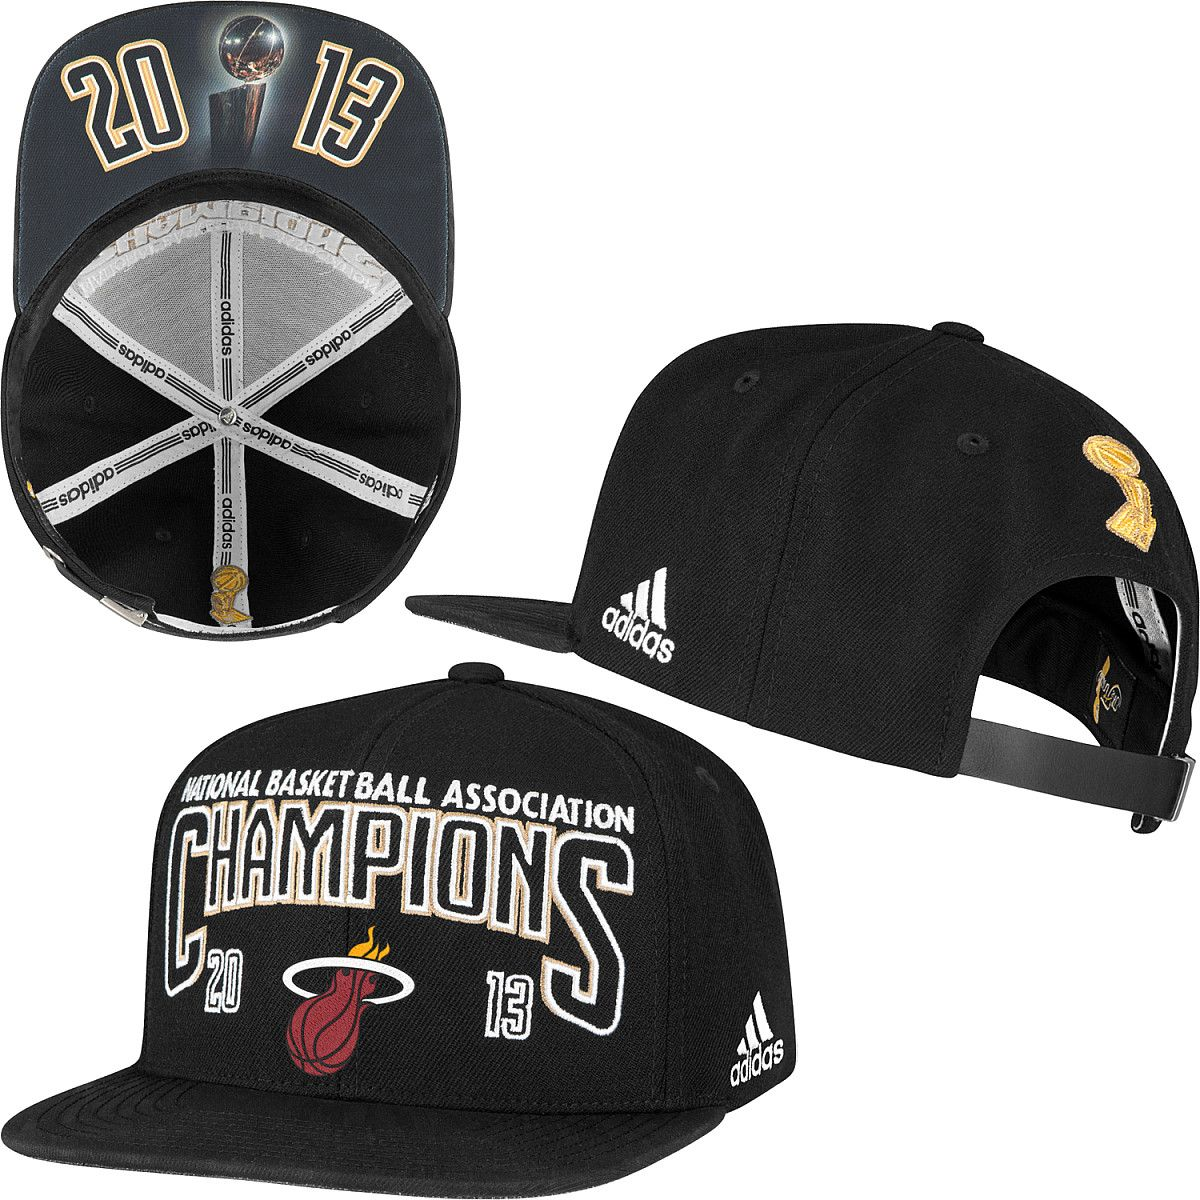 adidas Miami Heat 2013 NBA Finals Champions Locker Room Hat - NBAStore.com 425860ac50